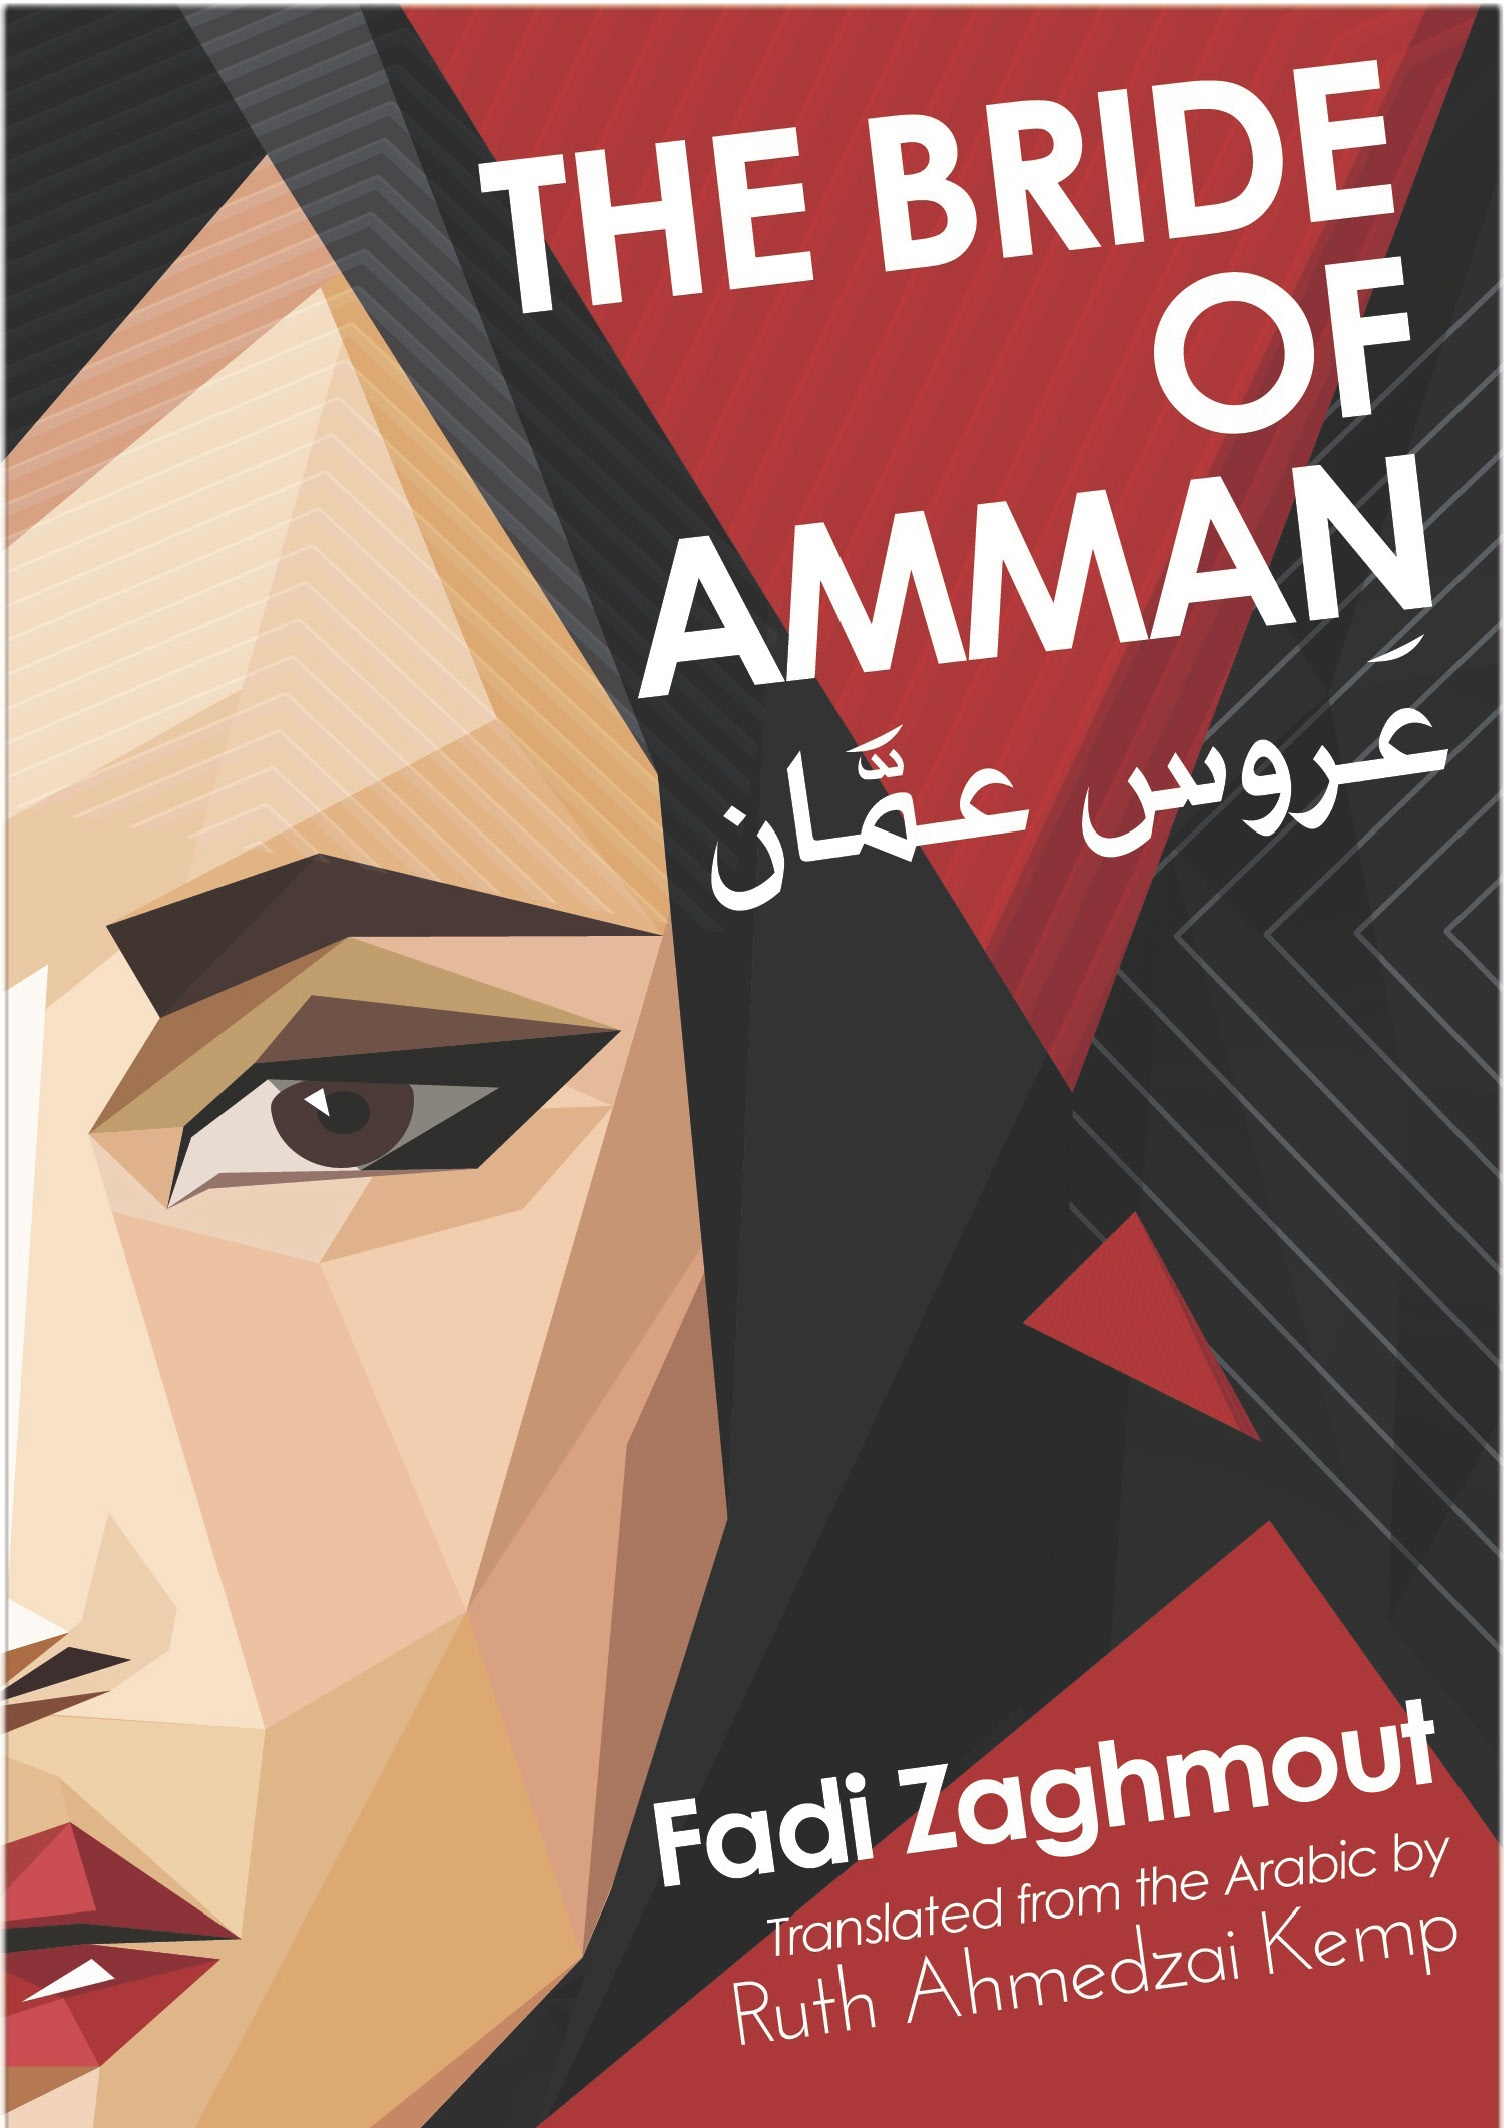 Bride of Amman by Fadi Zagmout